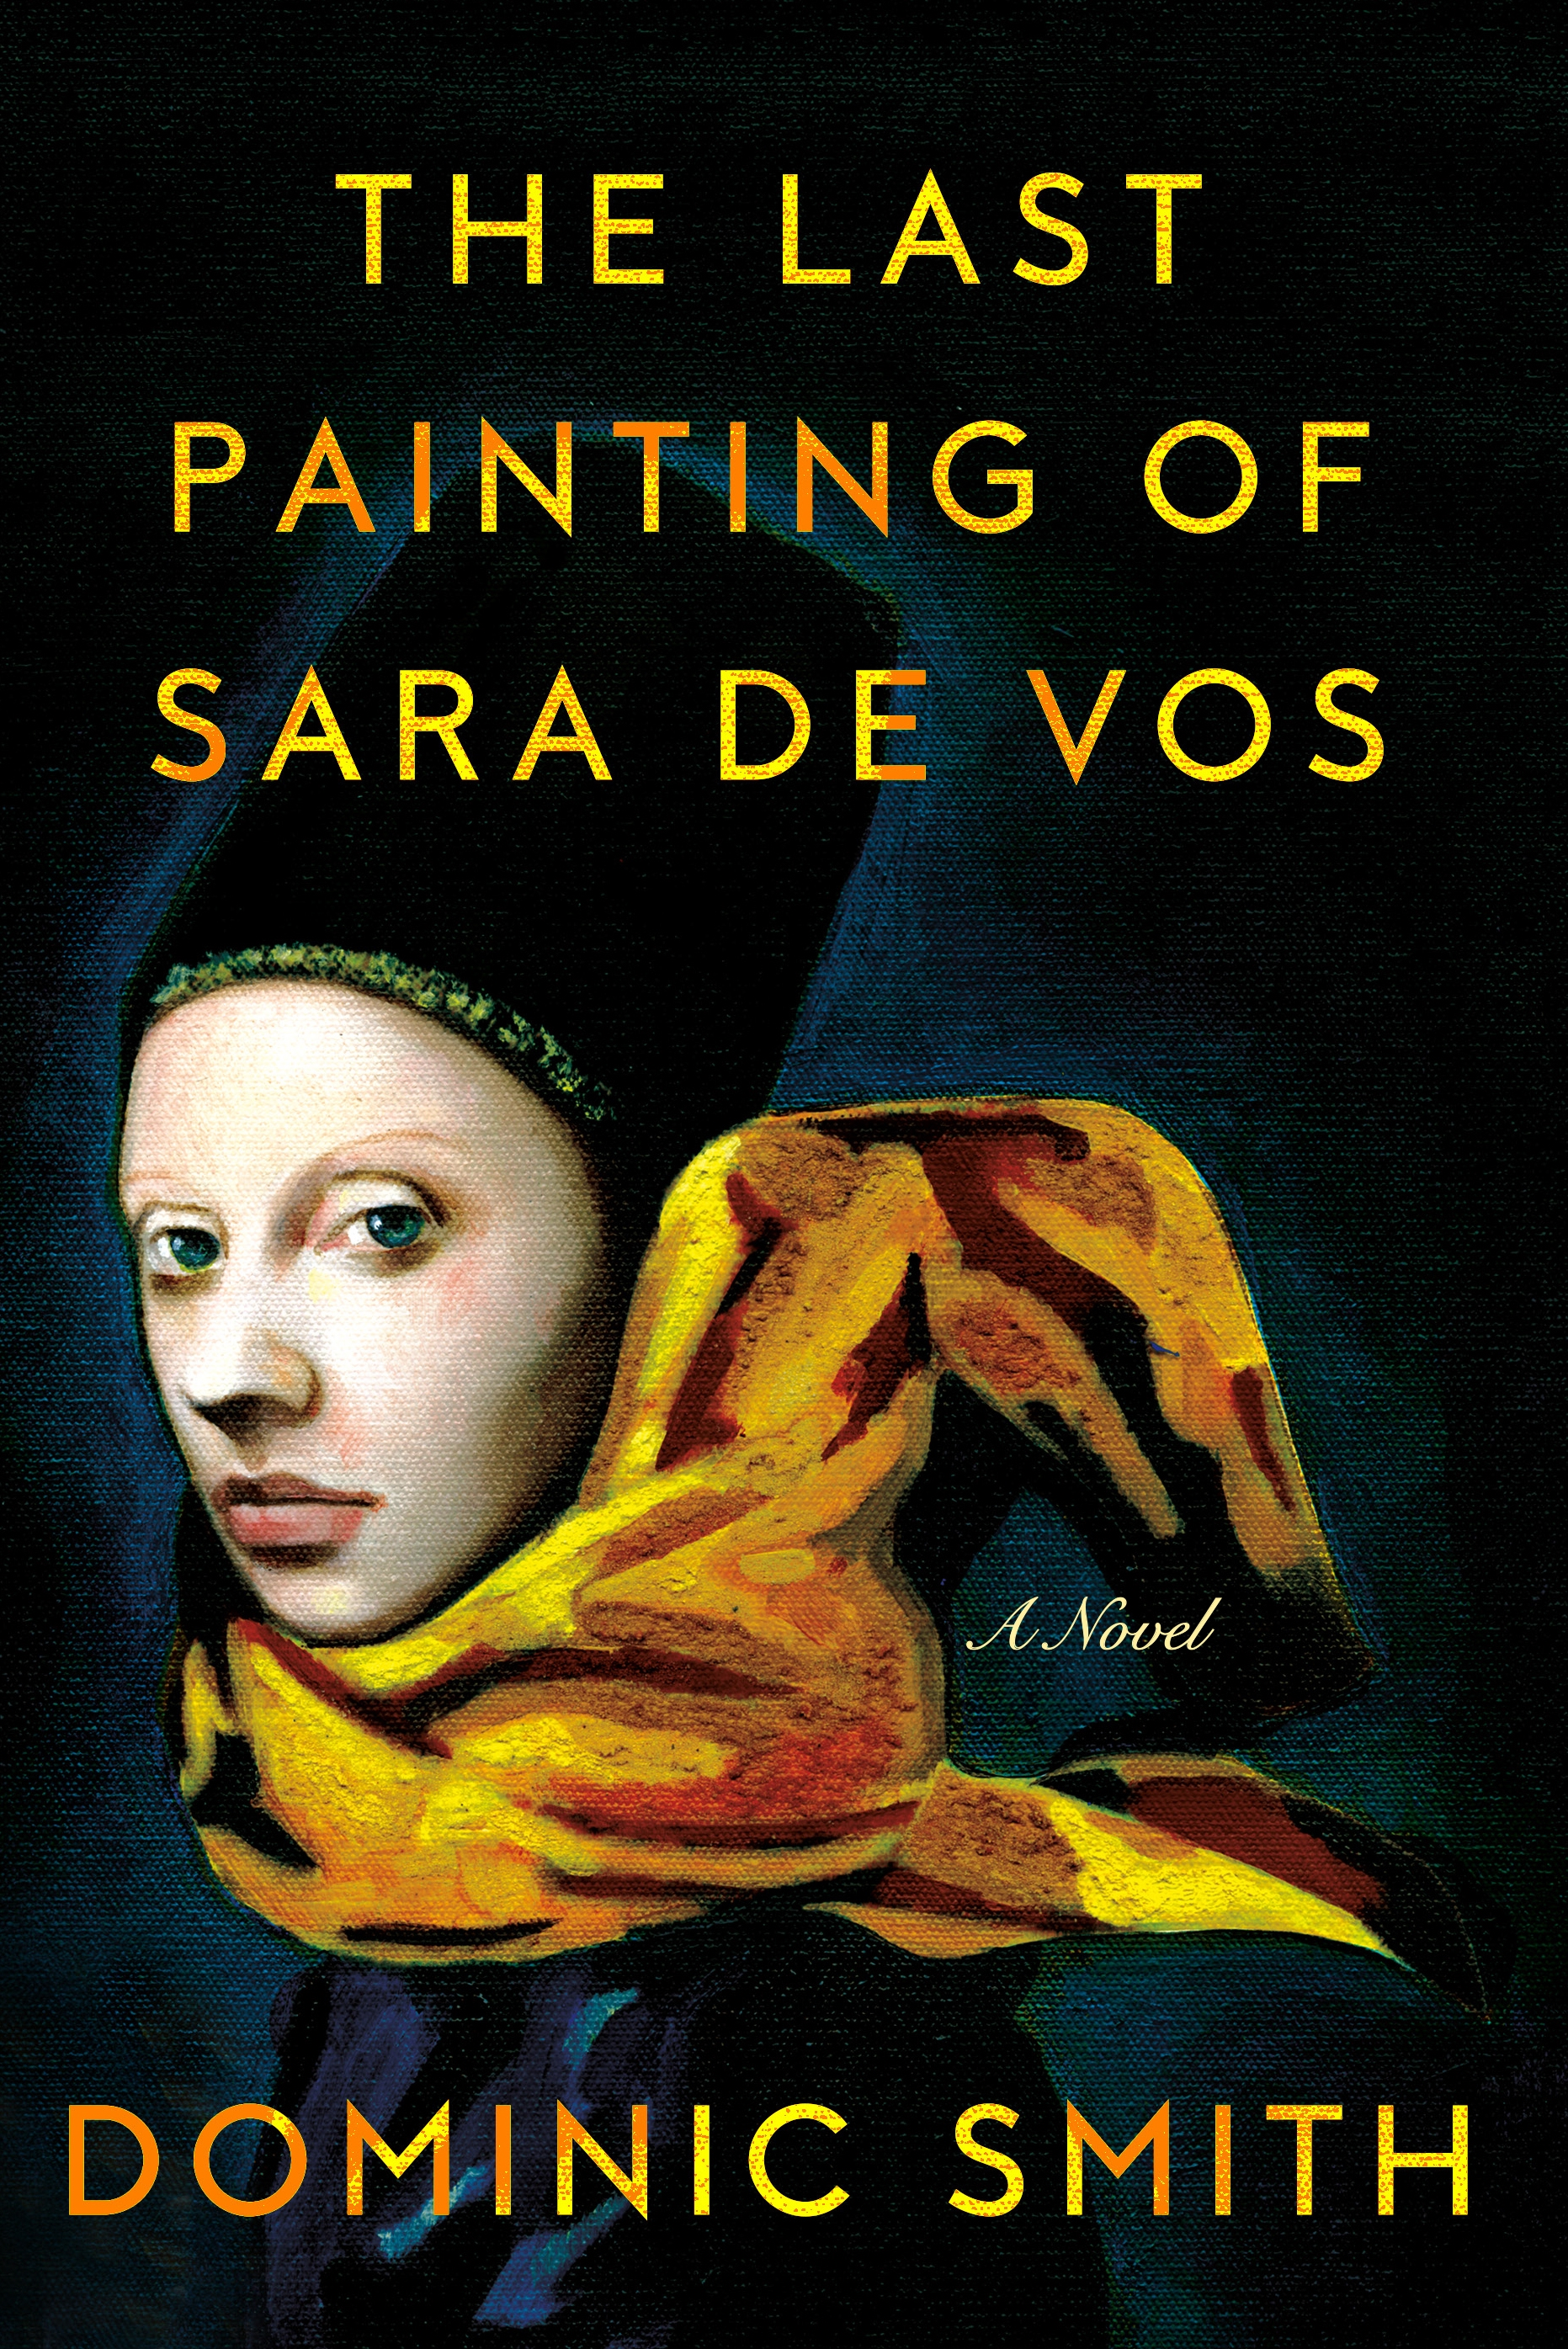 The Last Painting of Sara de Vos [electronic resource] : A Novel